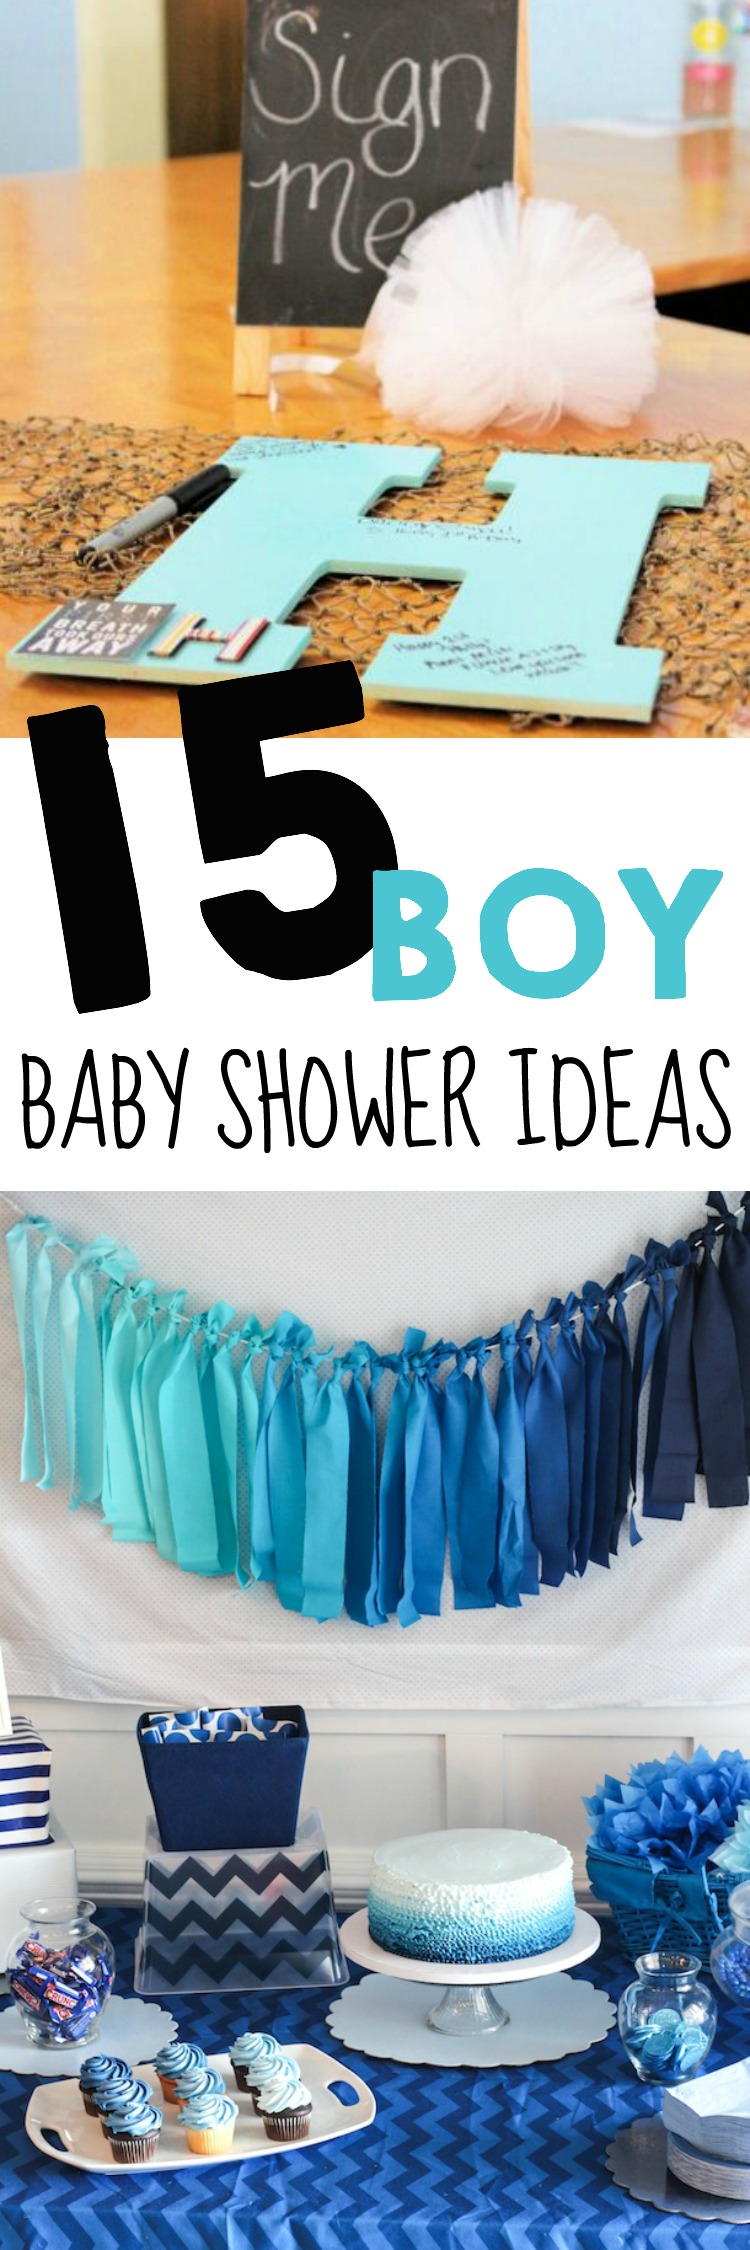 15 Baby Shower Ideas For Boys The Realistic Mama